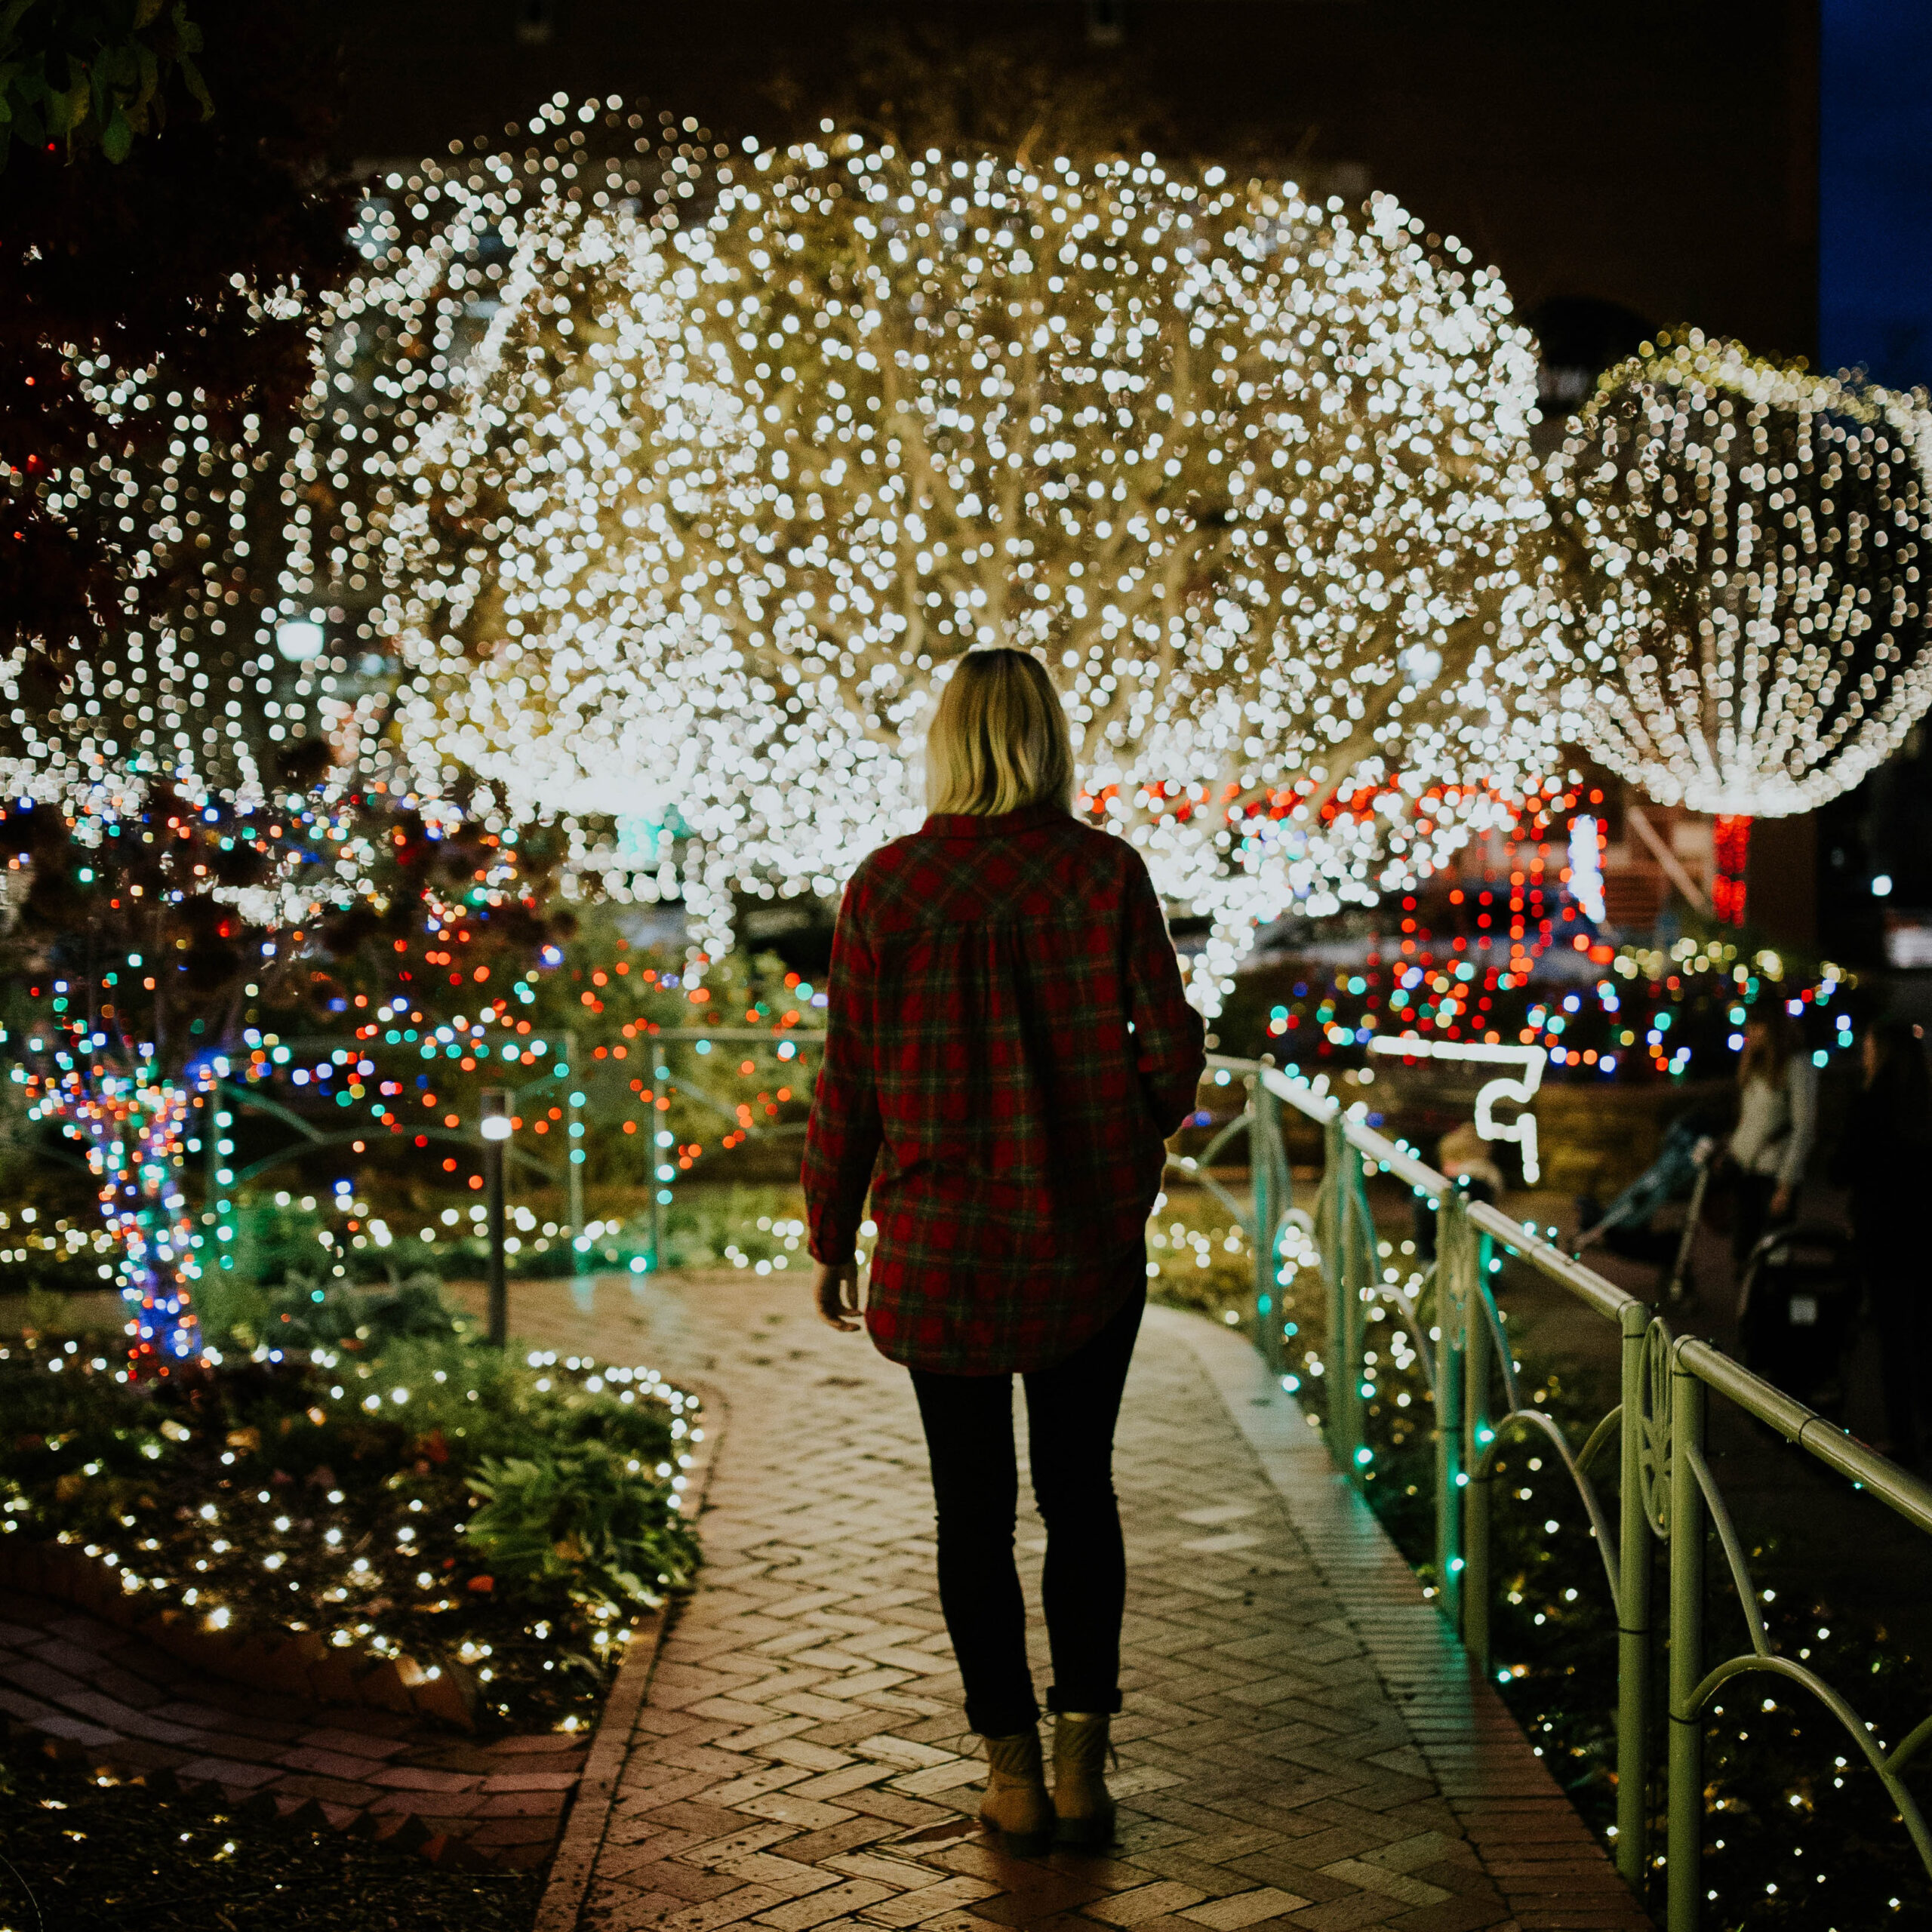 woman walking through area decorated with holiday lights